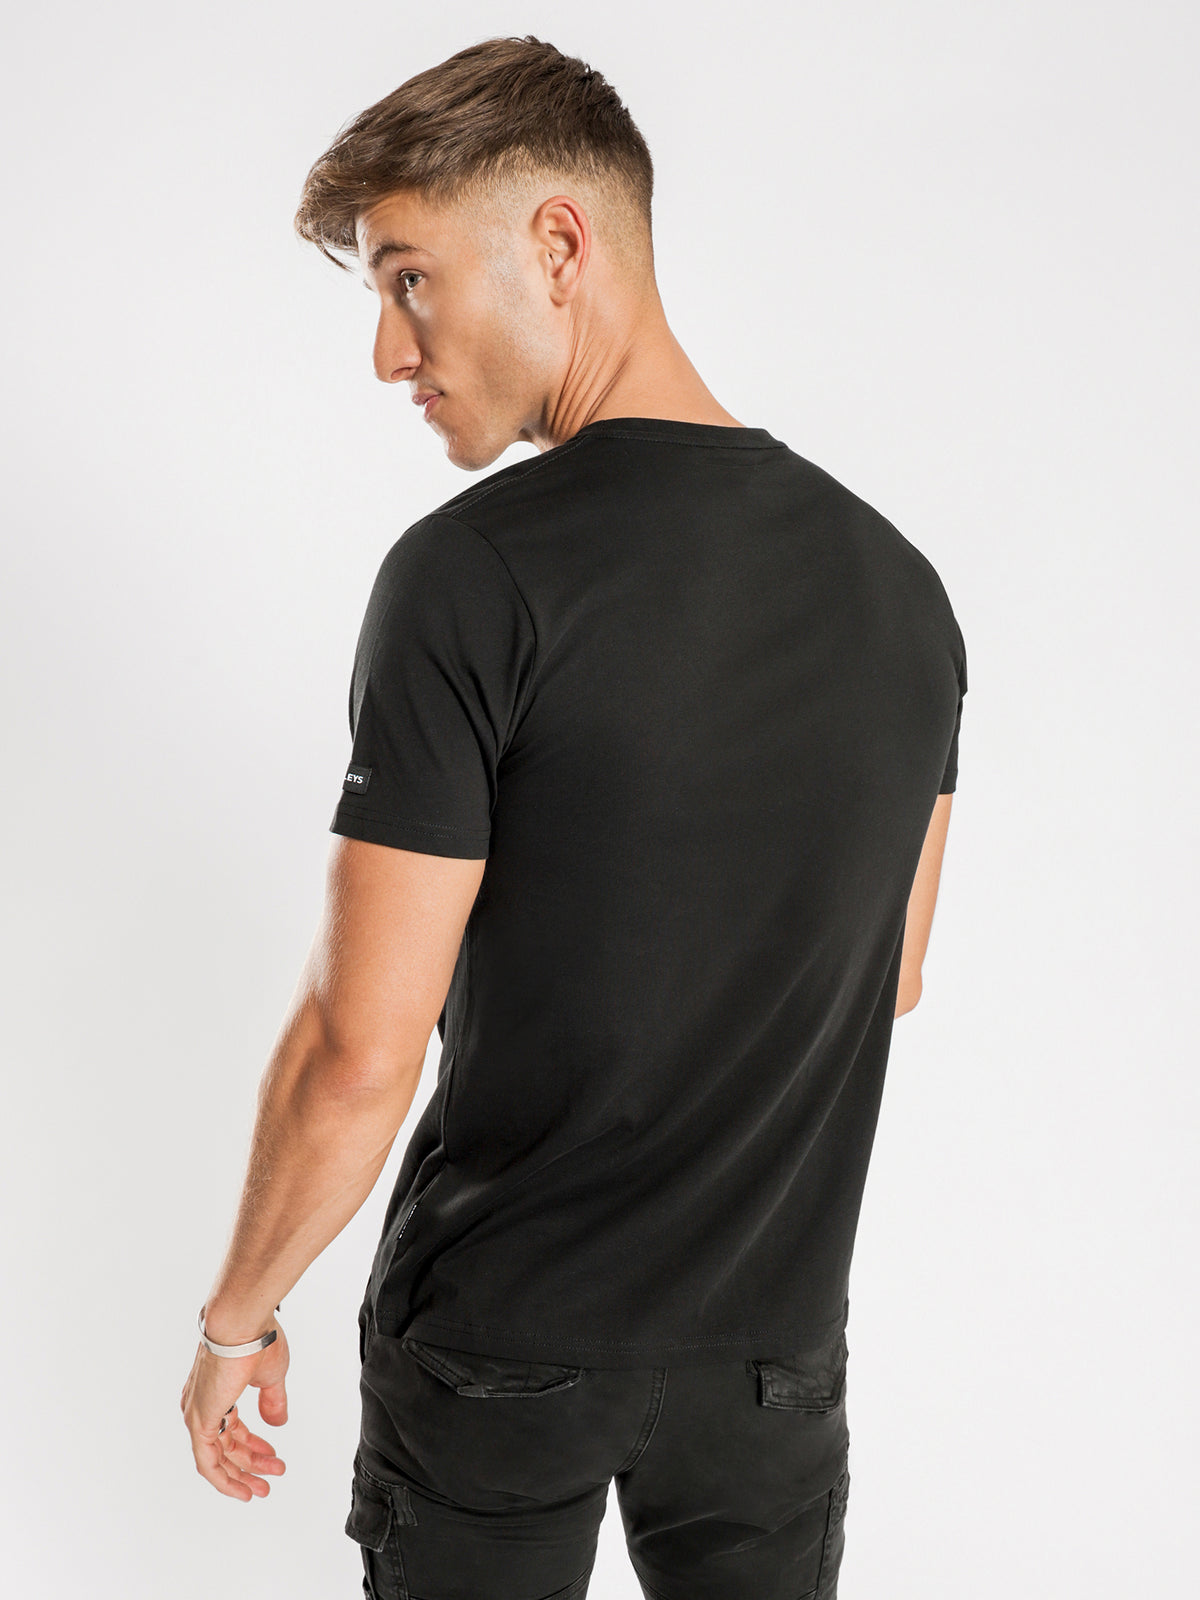 Briggs T-Shirt in Black